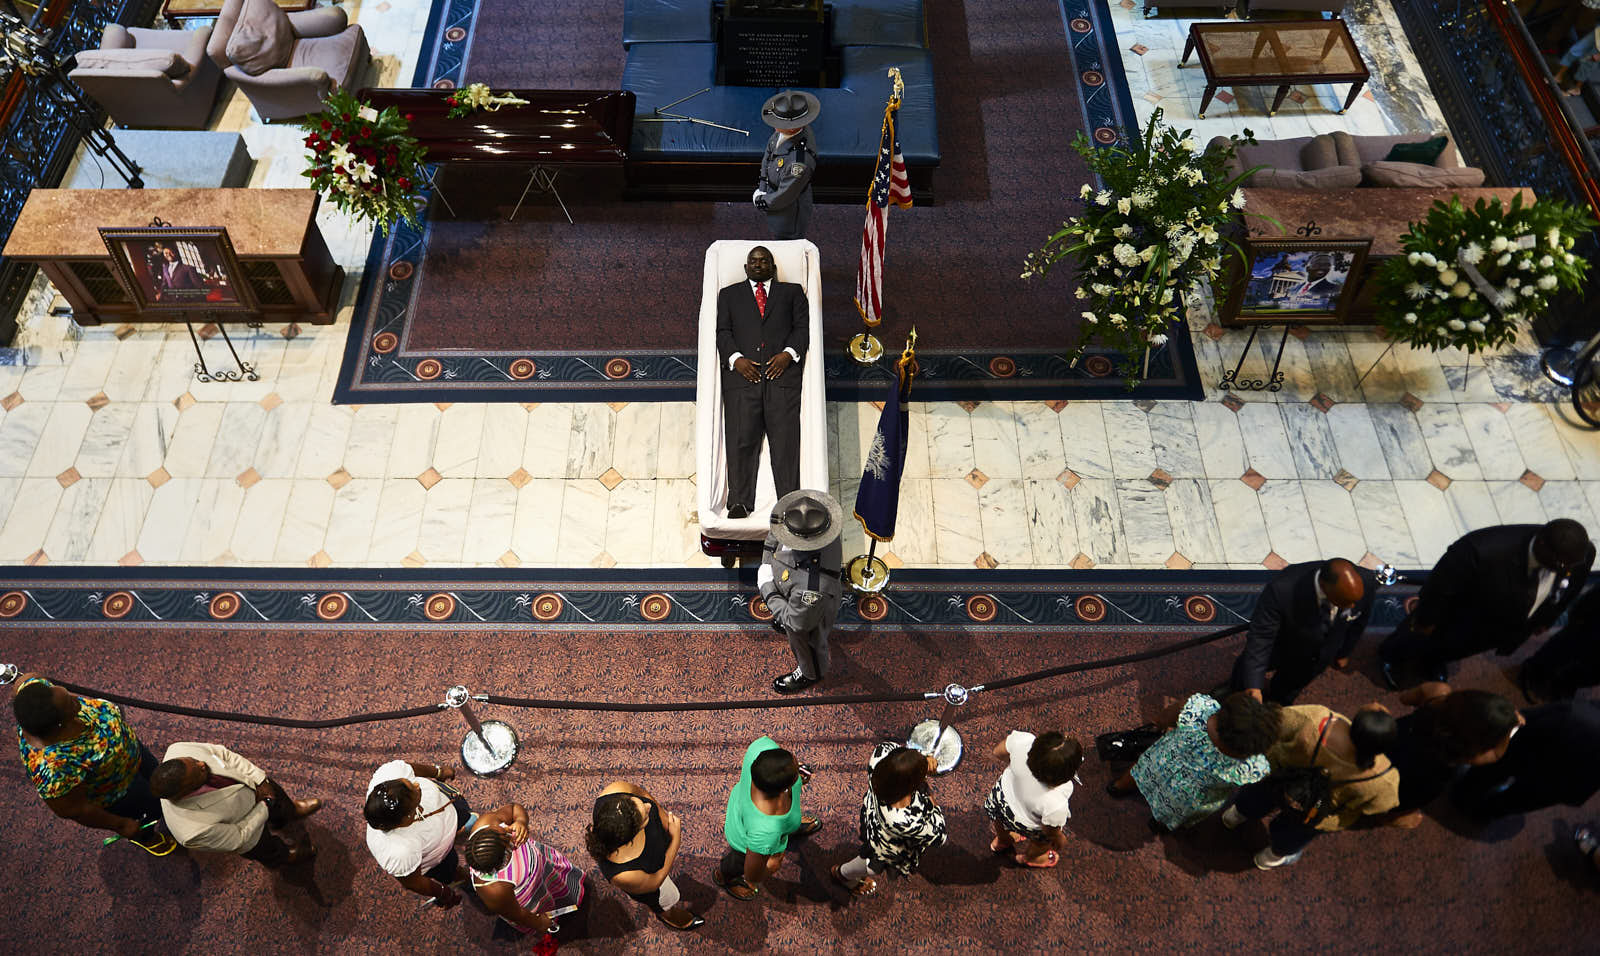 Visitors file past the coffin of Rev. Clementa Pinckney, as it lies in state inside the rotunda of the South Carolina Capitol building on Wednesday, June 24, 2015 in Columbia, S.C.  Pinckney, a state senator, and eight others were shot to death inside Mother Emanuel AME Church when gunman Dylann Roof opened fire during a Bible study session.